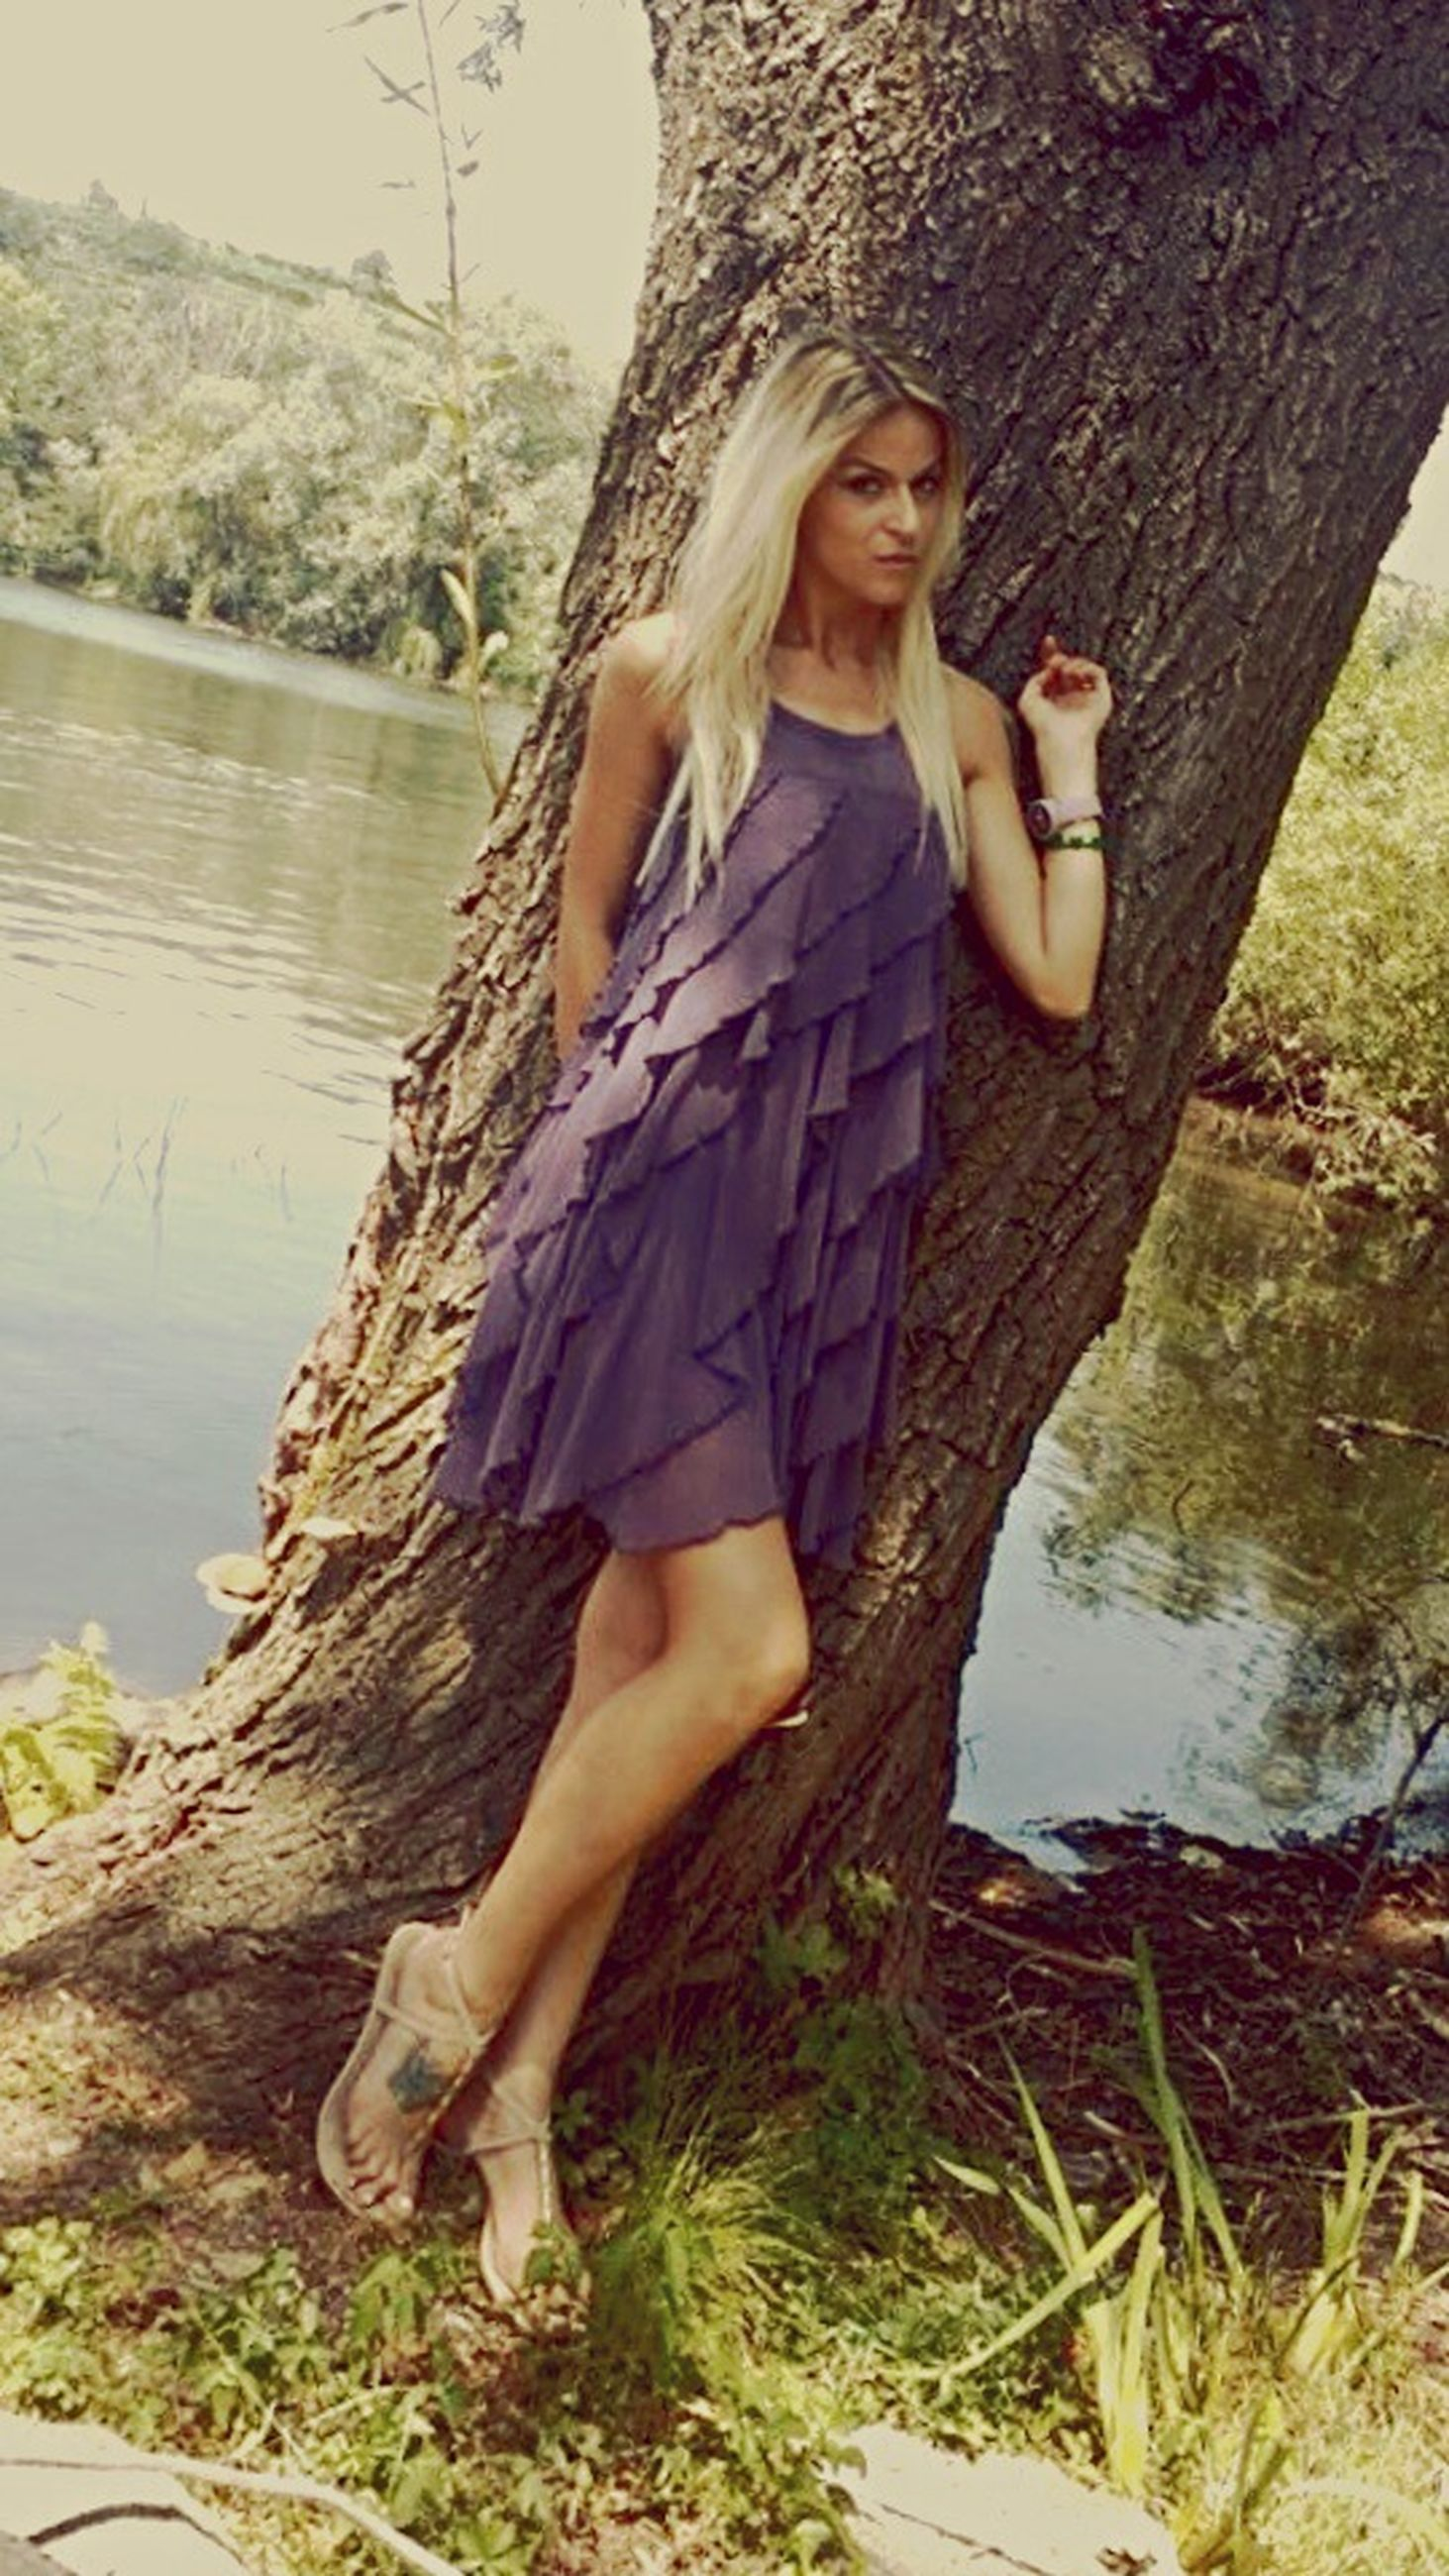 young adult, young women, lifestyles, leisure activity, water, person, casual clothing, sensuality, lake, relaxation, sitting, long hair, standing, full length, three quarter length, beauty